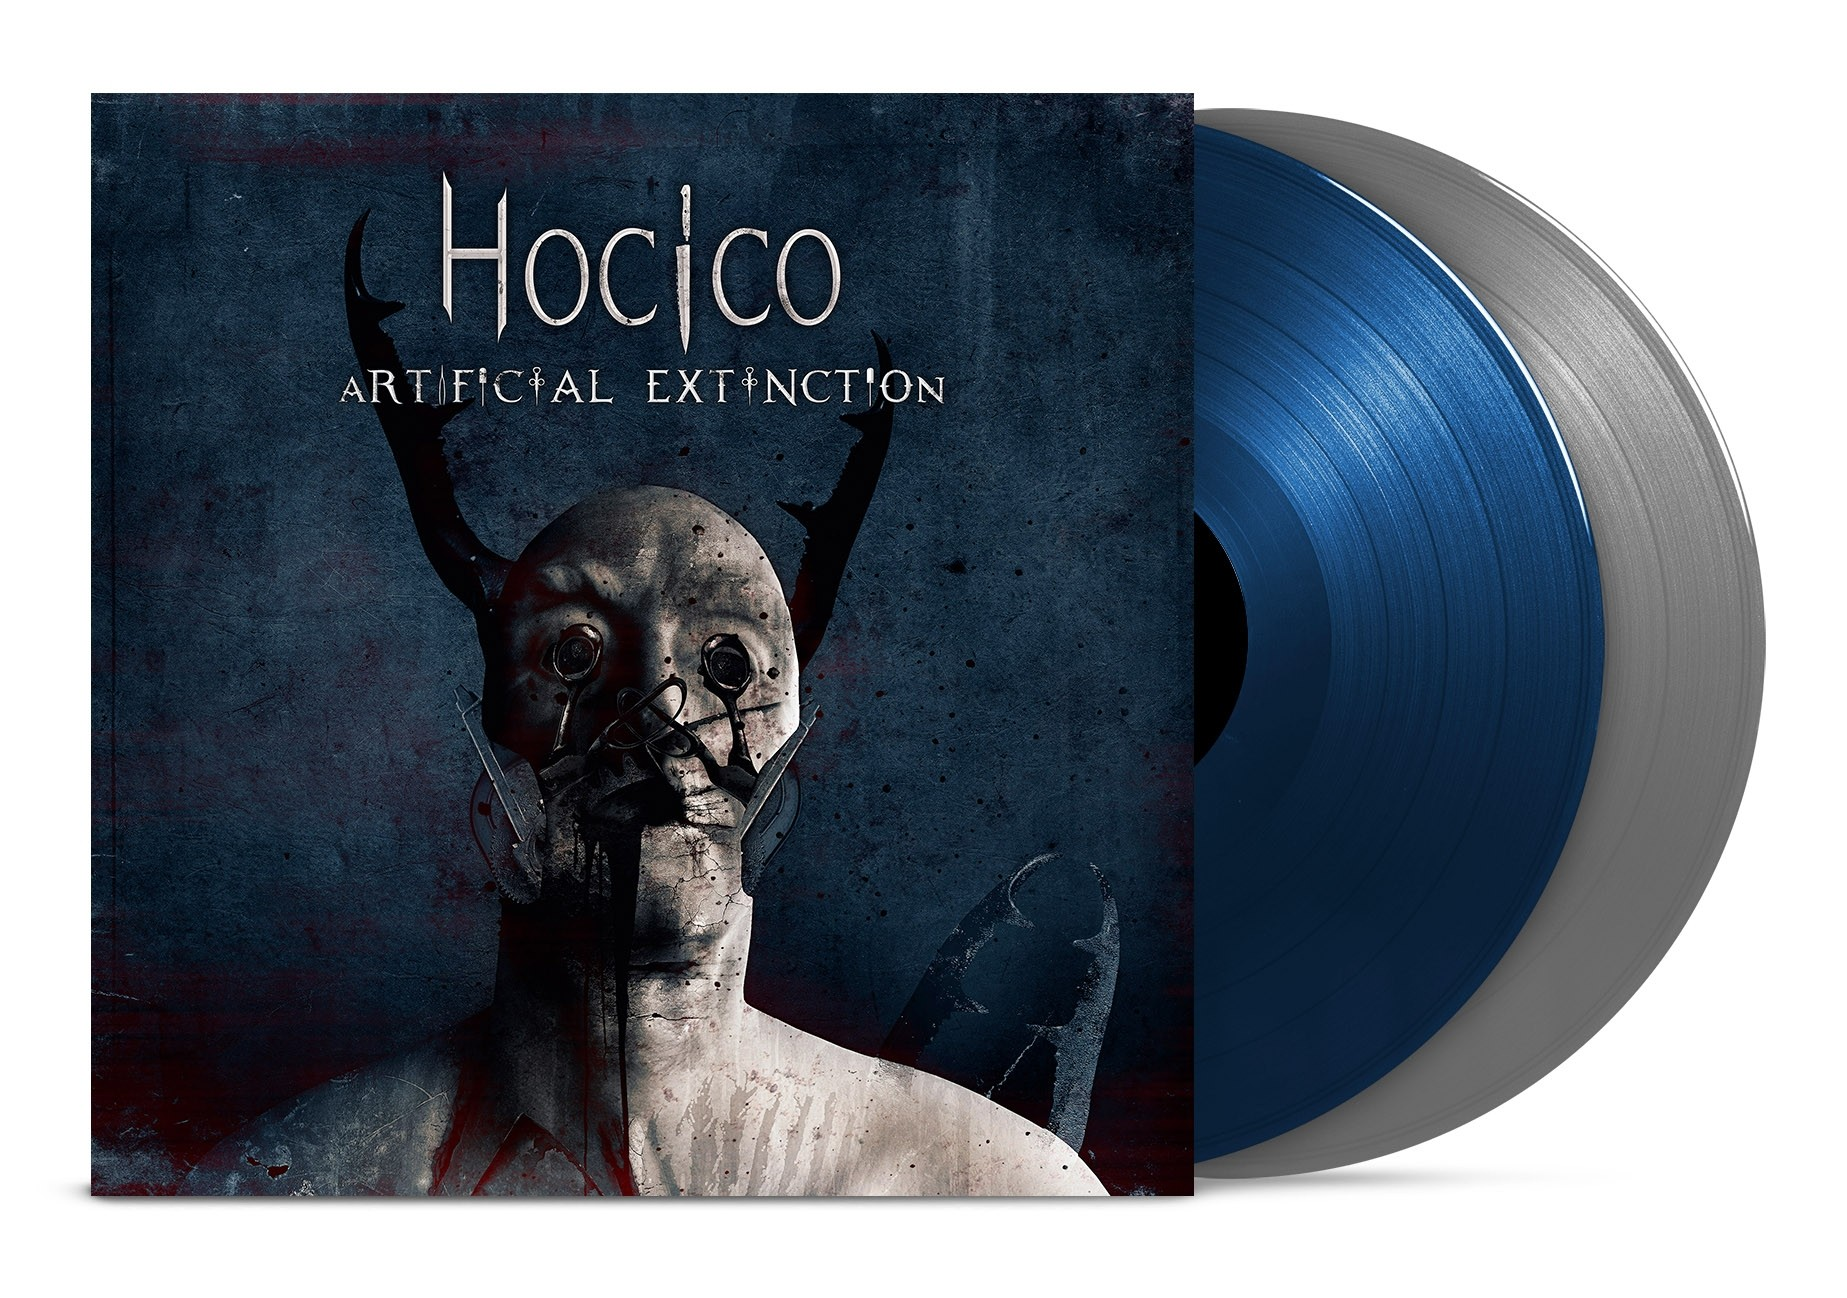 Hocico - Artificial Extinction (Limited Blue/Silver Vinyl) - 2LP